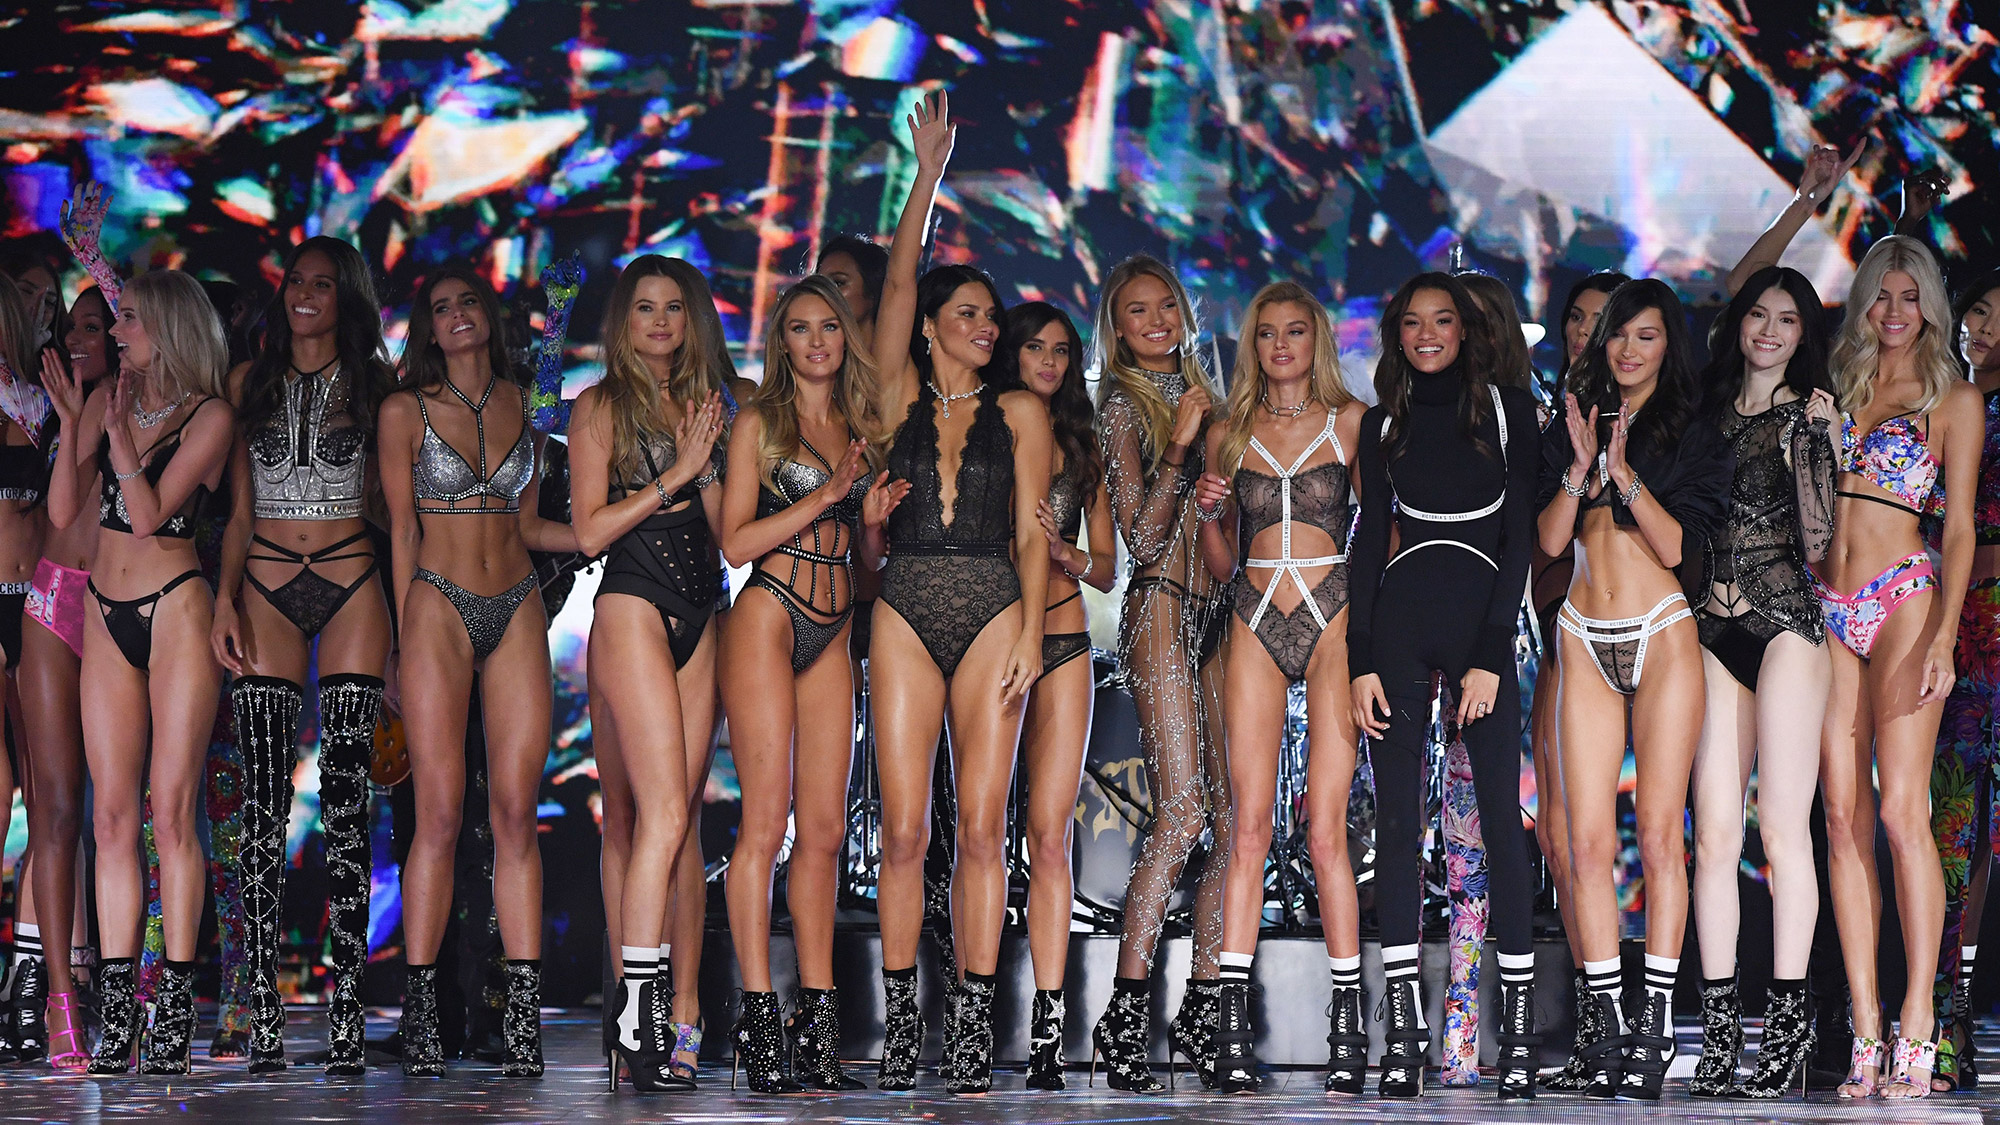 This is what actually happens at a Victoria's Secret show